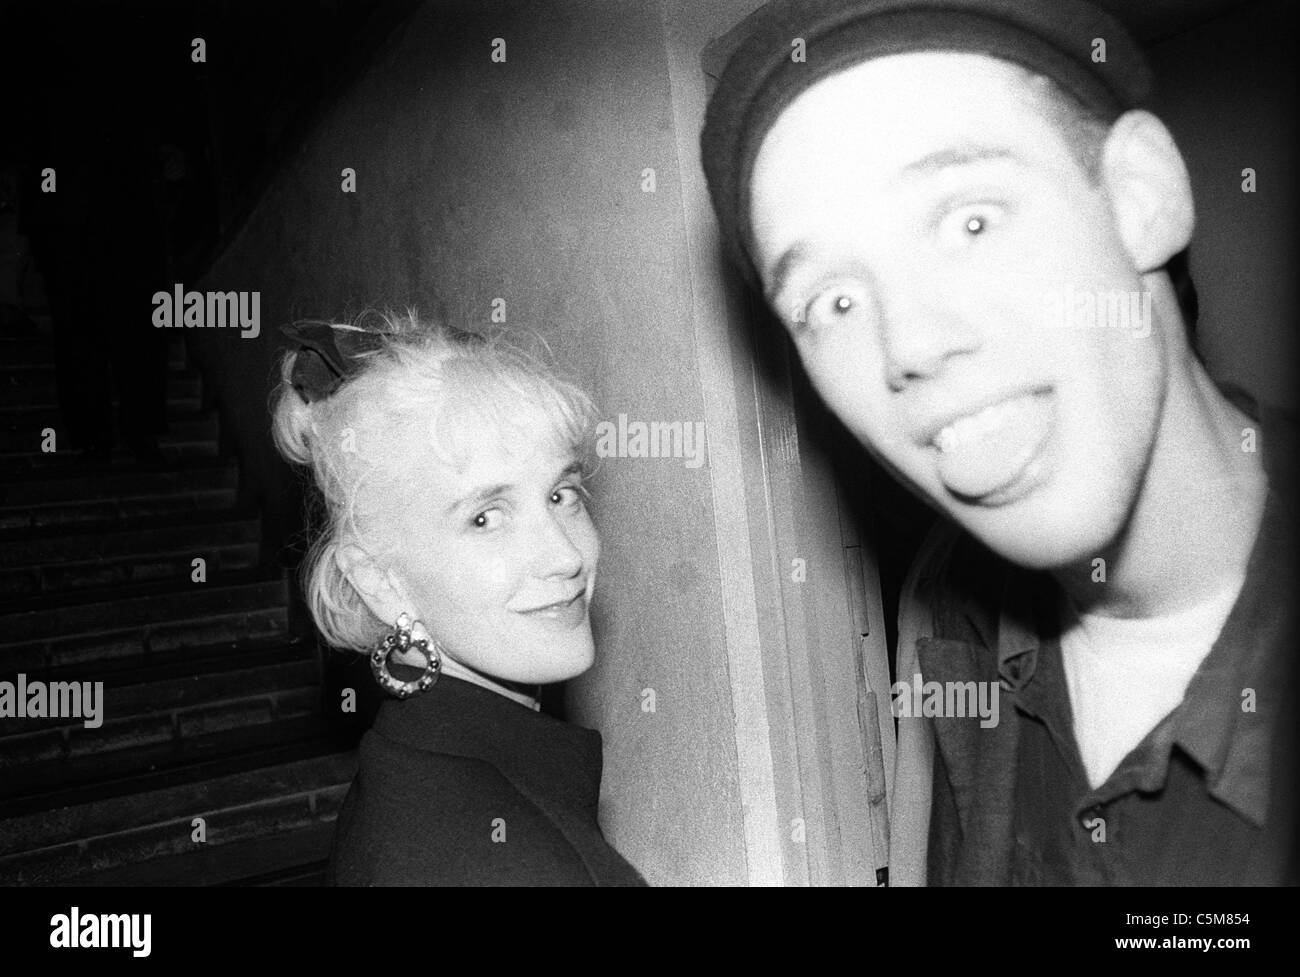 ben volpeliere-pierrot and Paula Yates - Stock Image